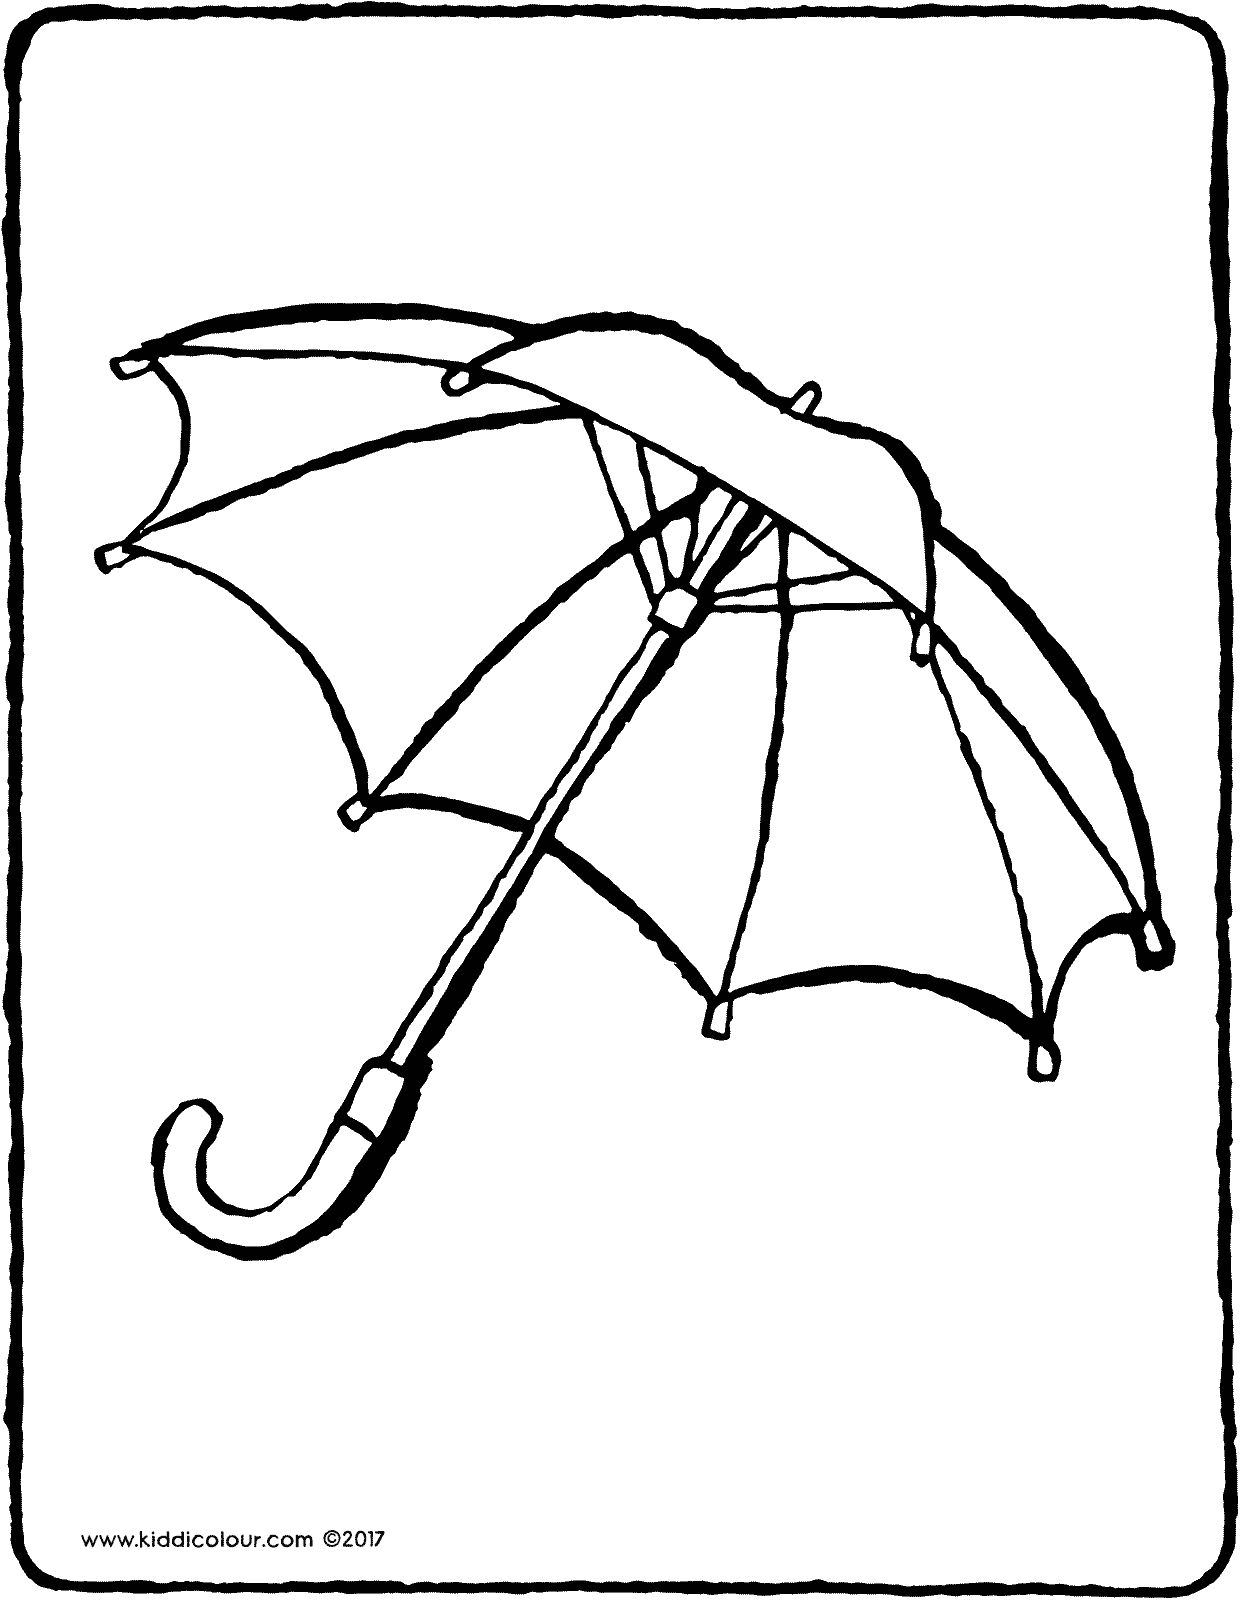 umbrella colouring page drawing picture 01V